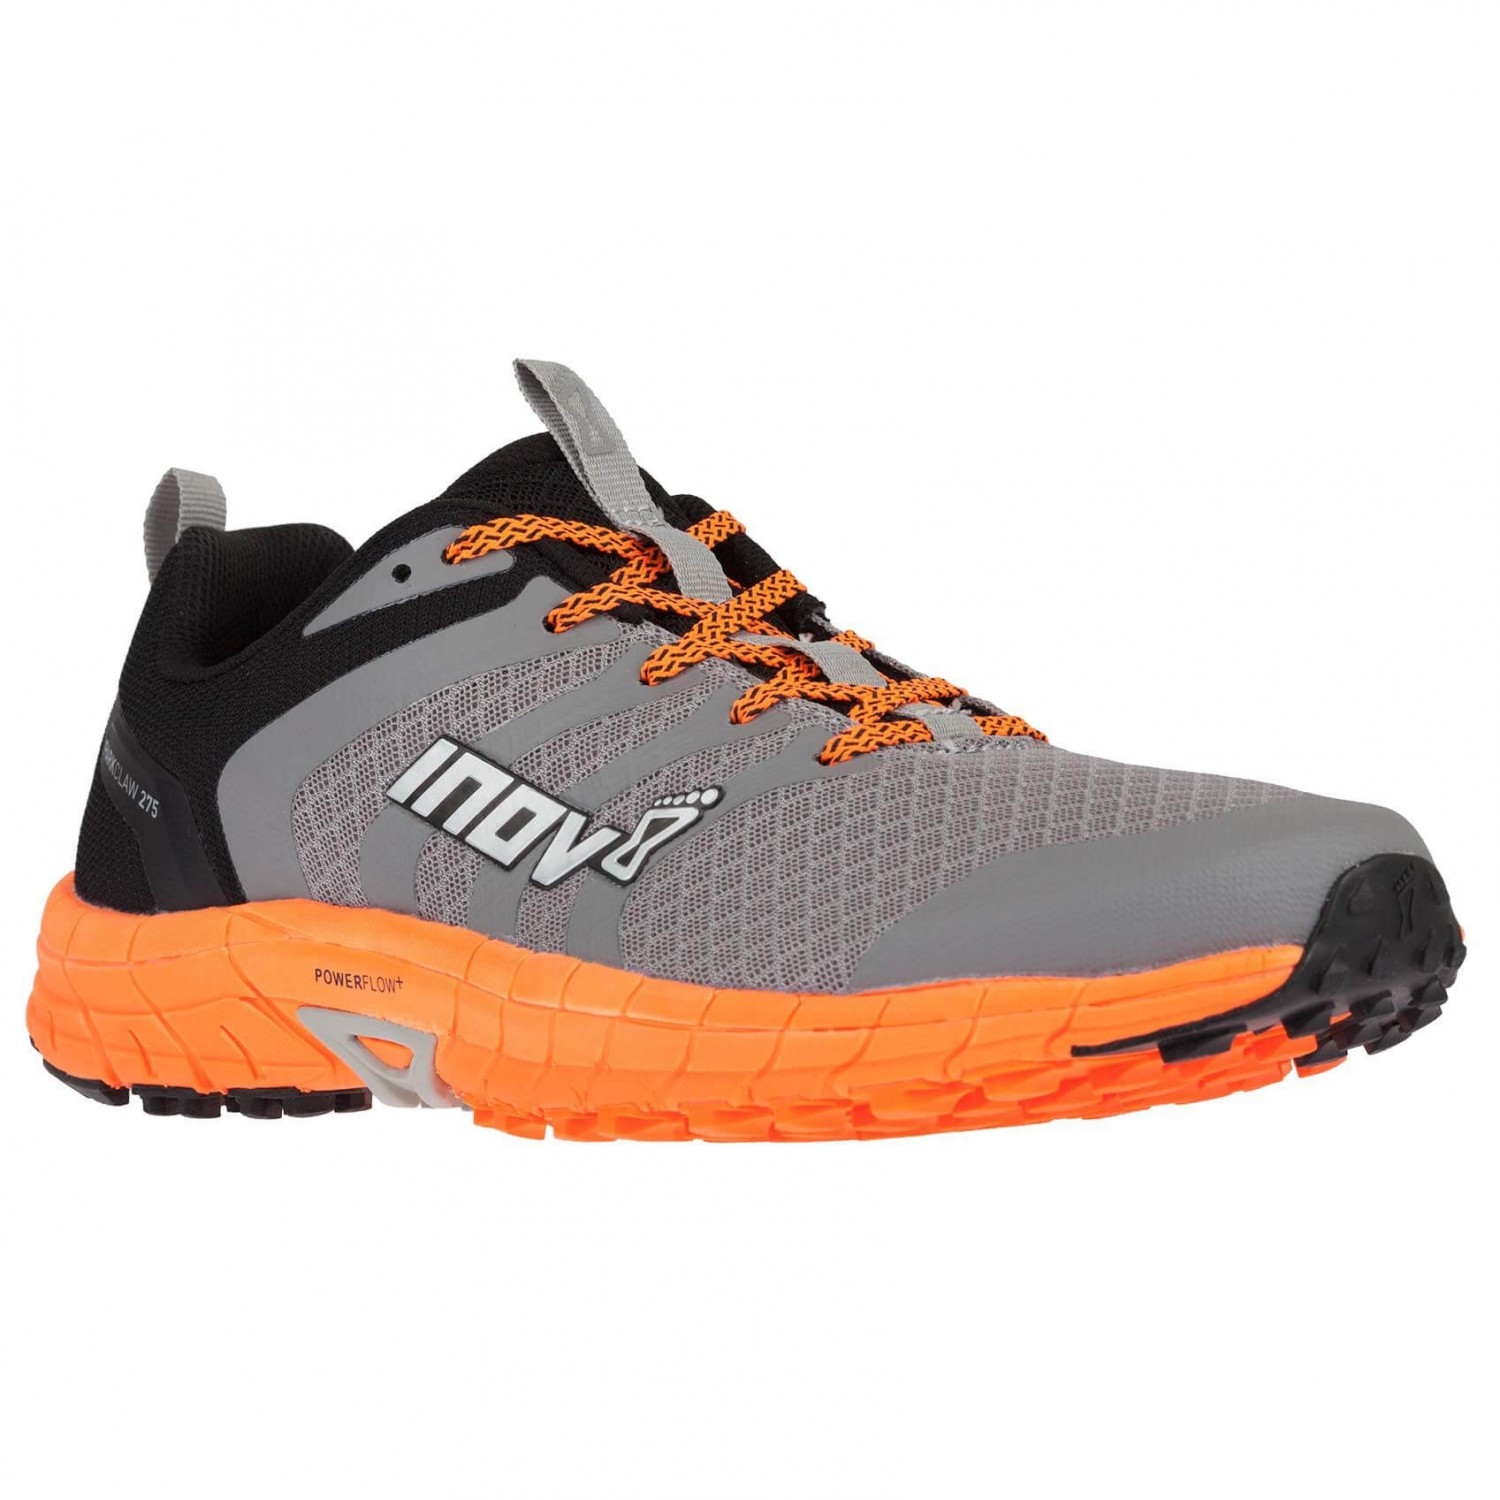 Inov-8 - Parkclaw 275 - Runningschuhe Grey / Orange